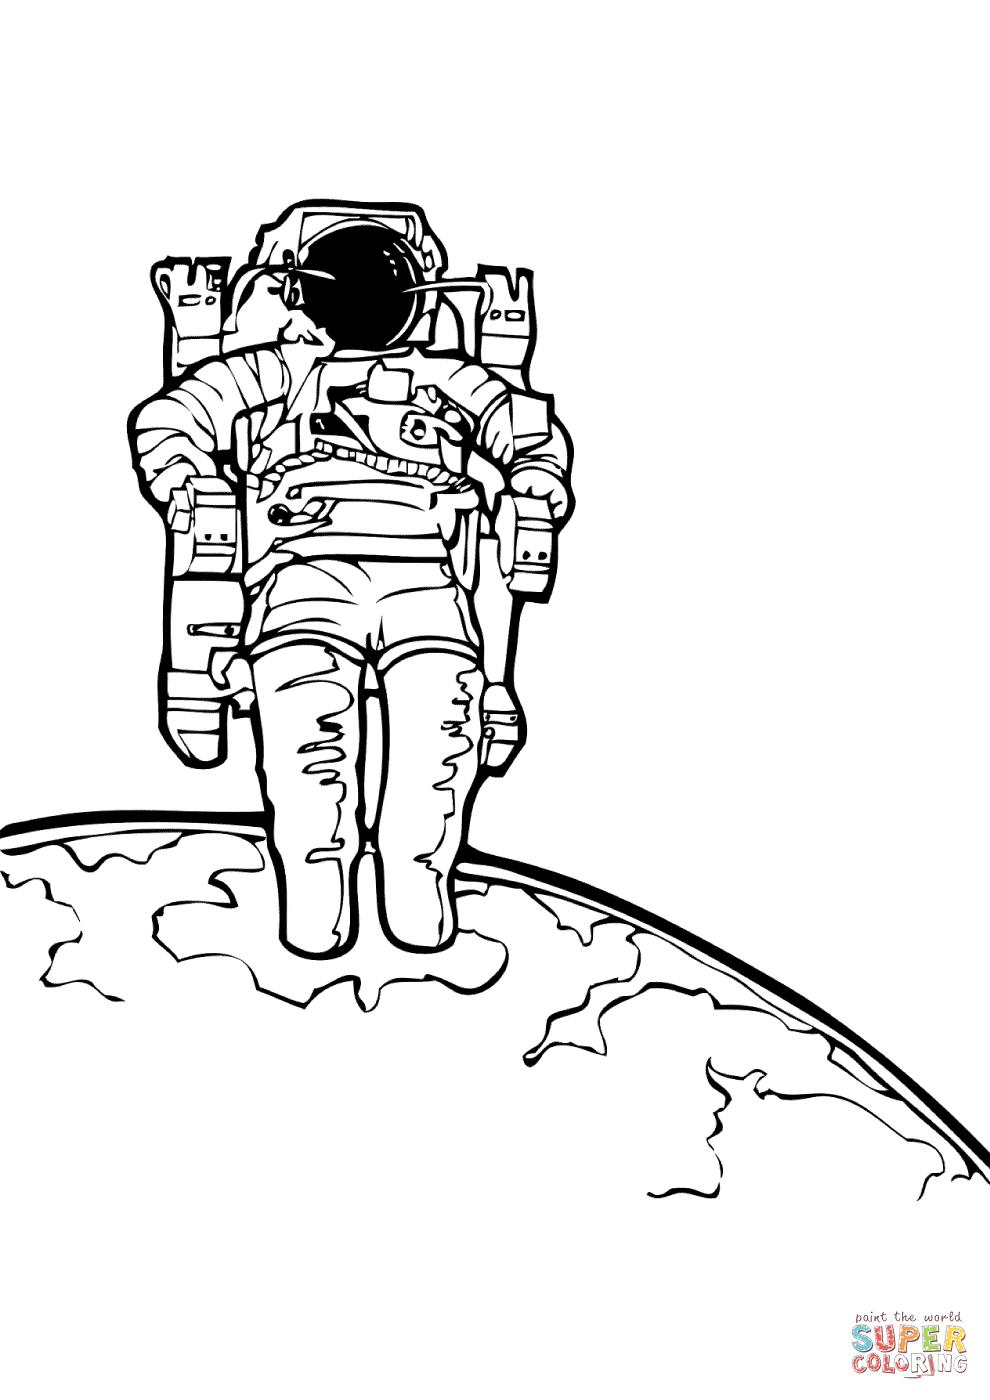 Astronaut in The Outer Space coloring page | Free Printable ...